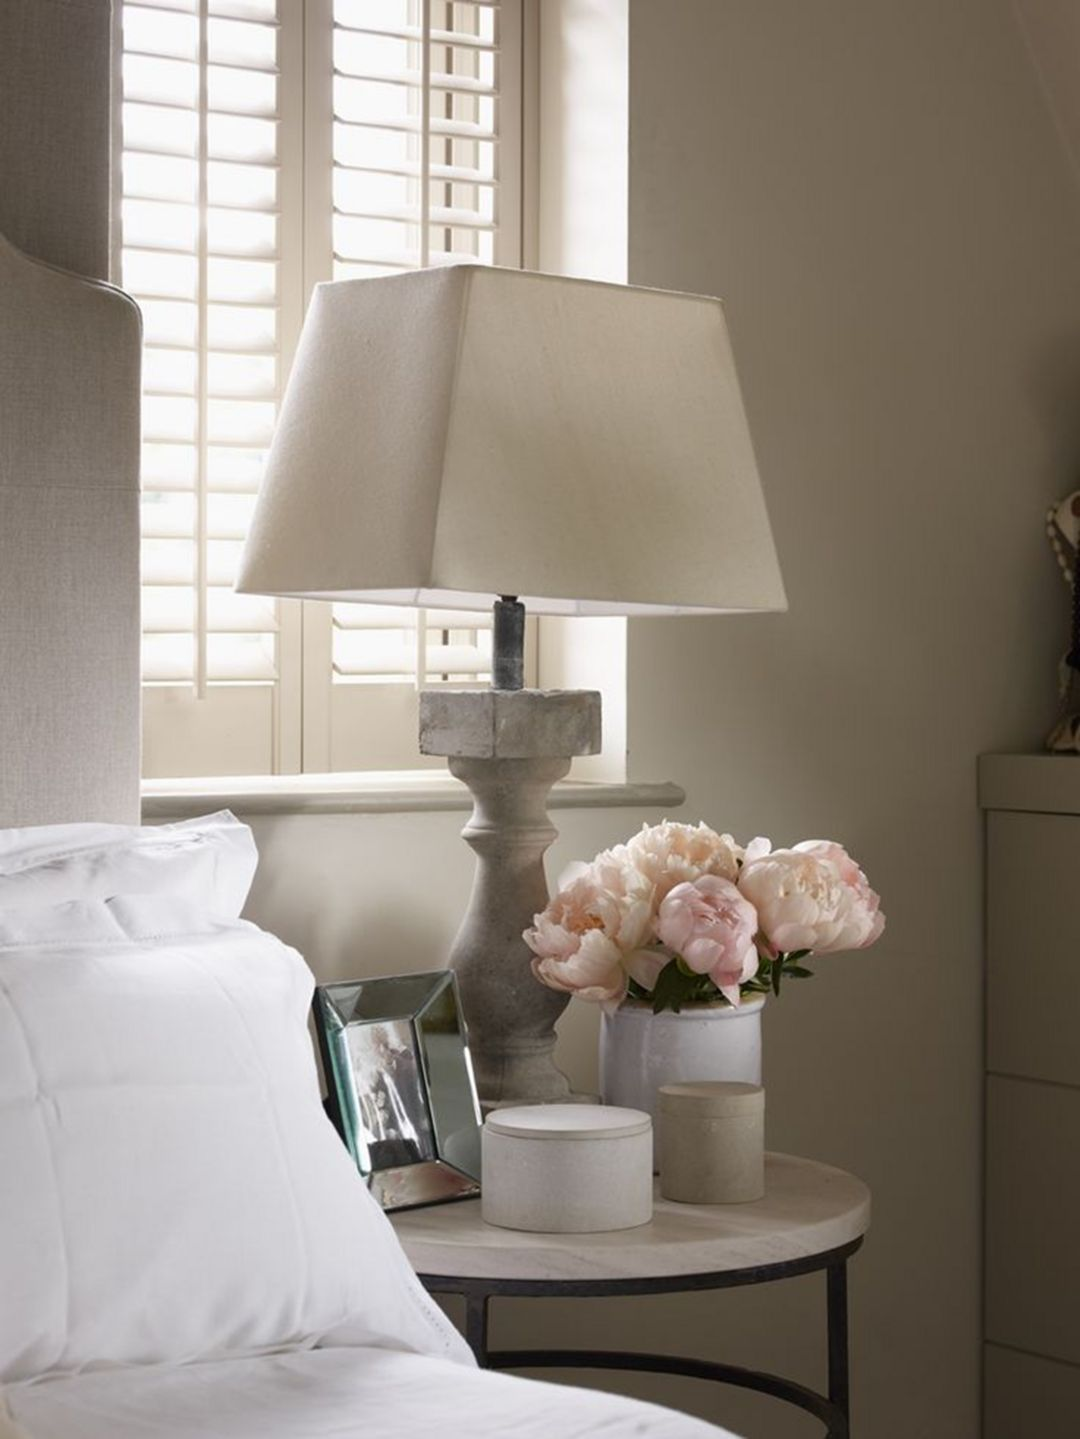 Awesome Bedside Table Lamps Ideas to Light Up Your Sleeping